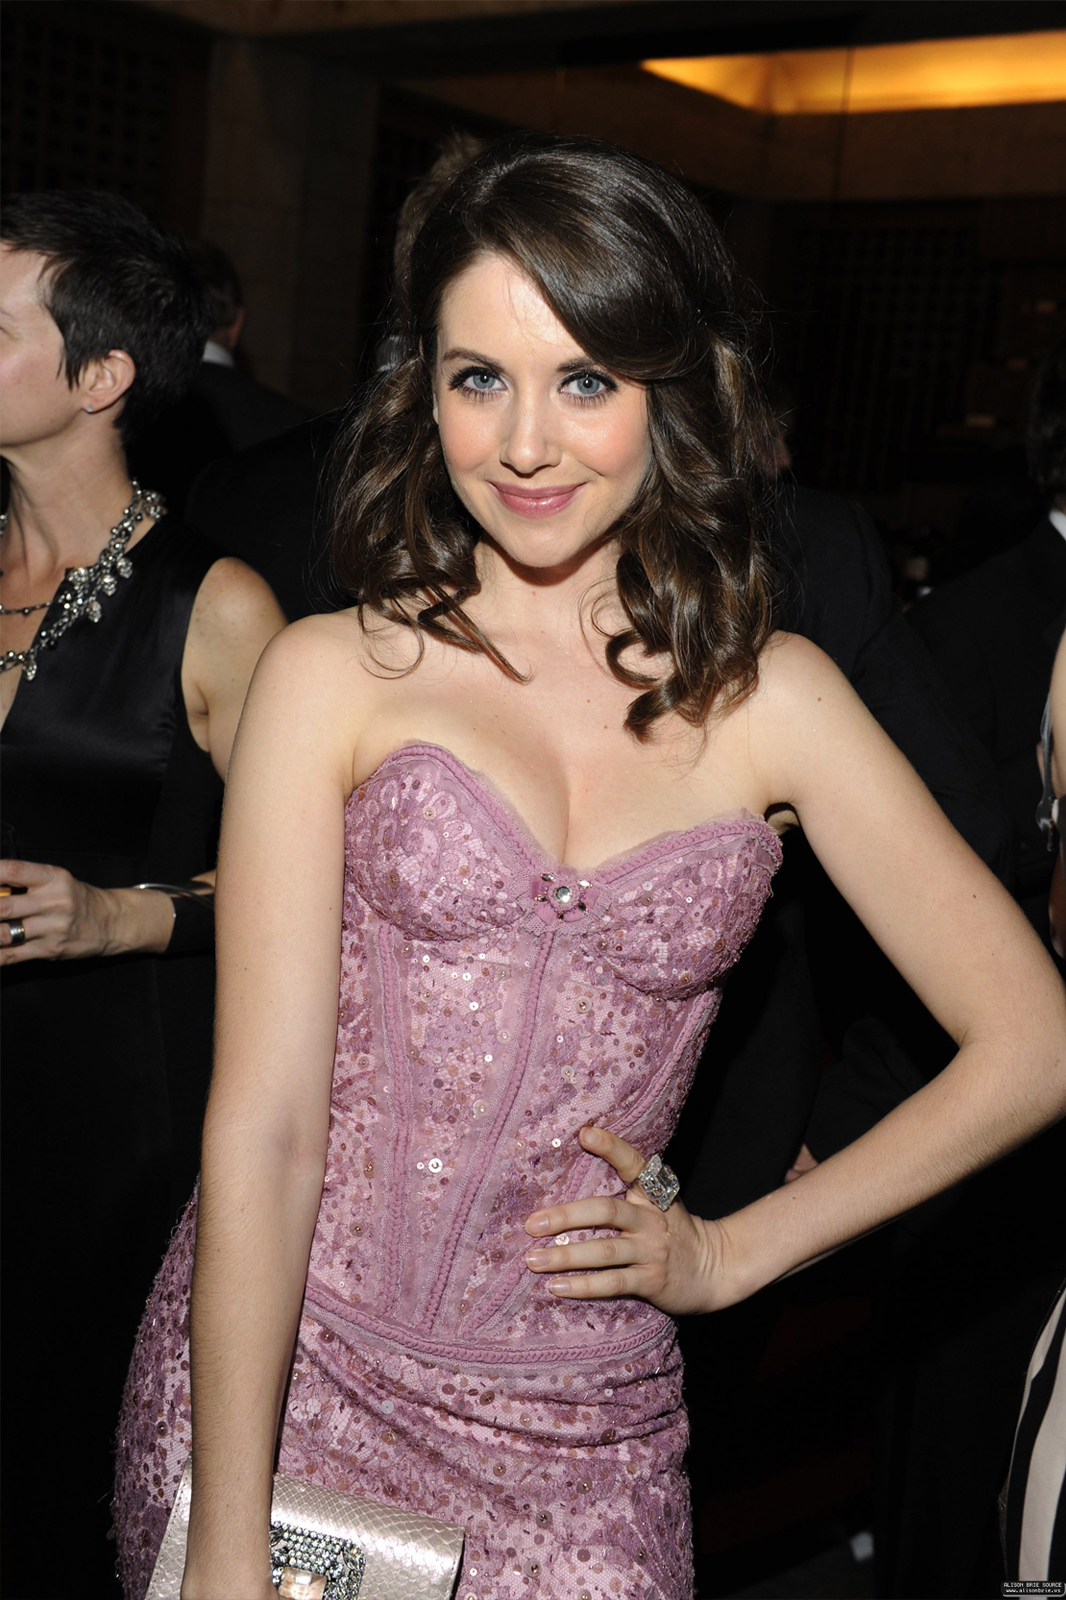 39 Hot Pictures Of Alison Brie - The Glow Tv Series Actress-7649